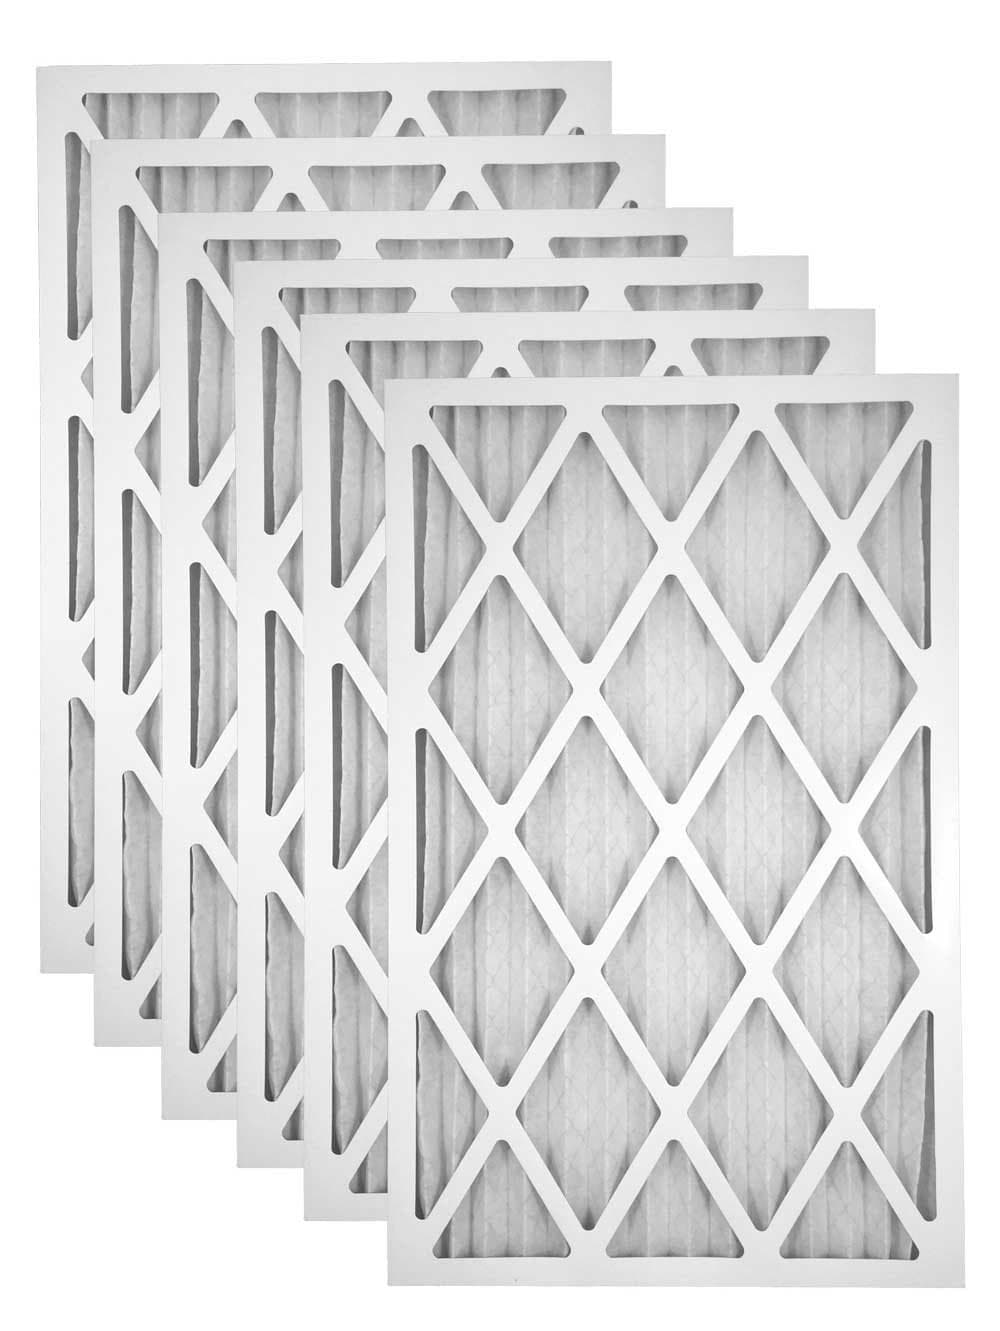 16x32x1 Merv 13 Pleated AC Furnace Filter - Case of 6